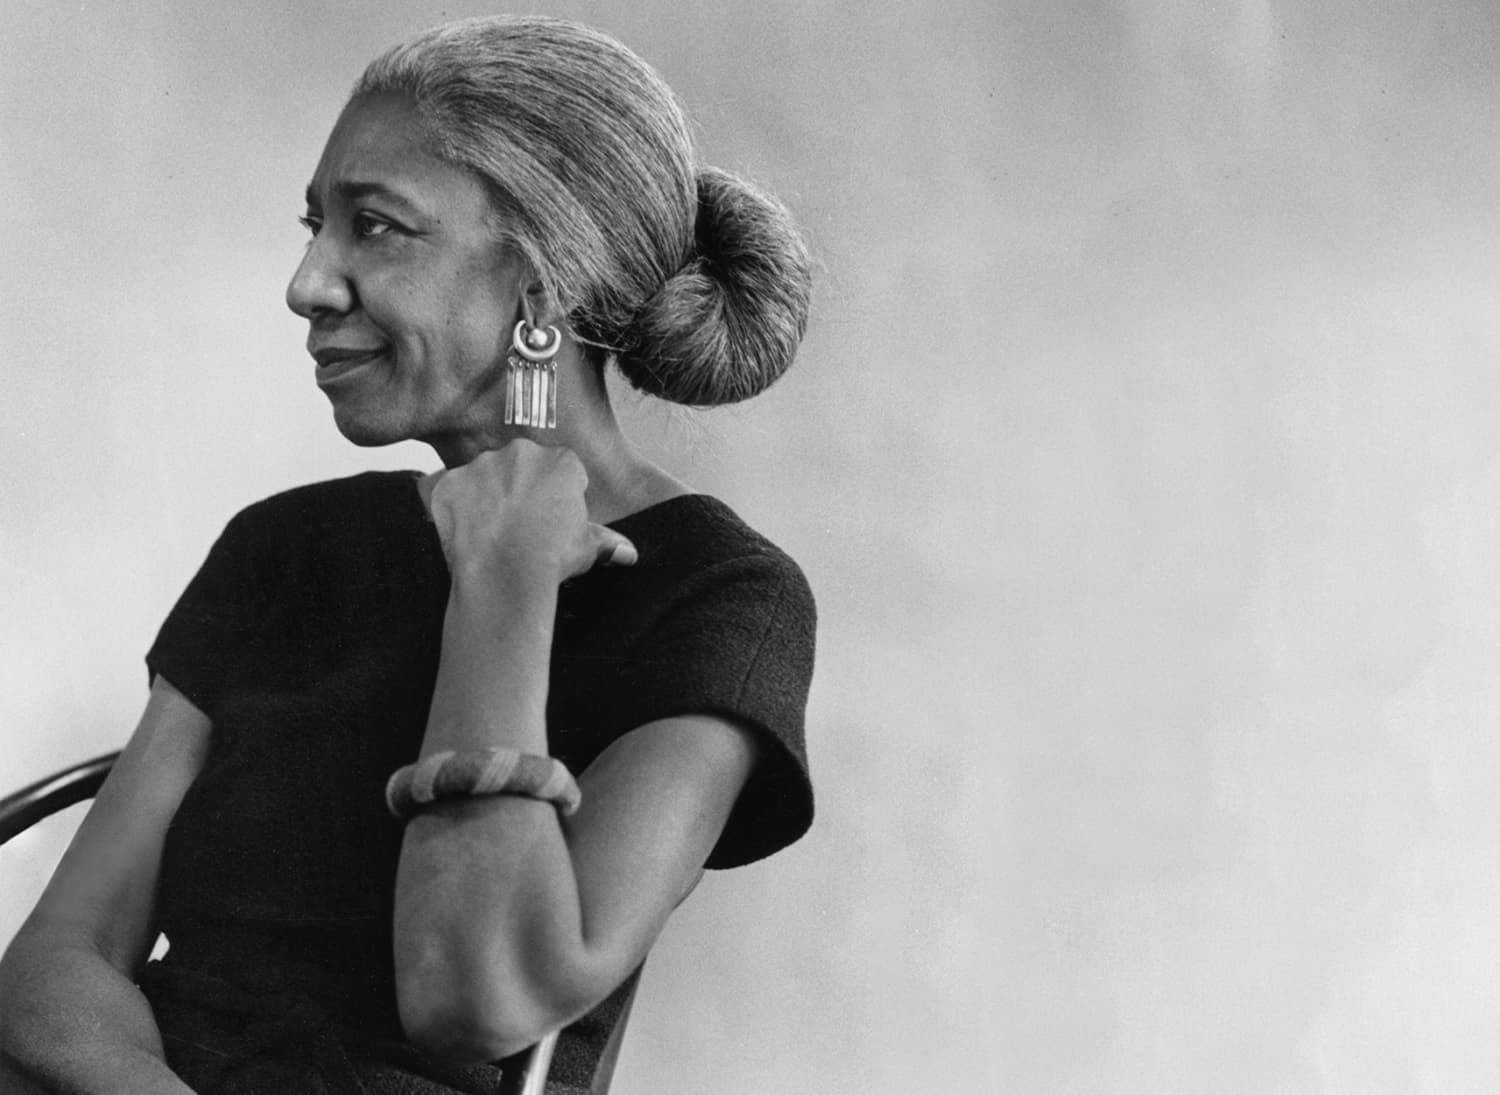 We Need to Thank Edna Lewis for Teaching Us the Joys of Eating Seasonally